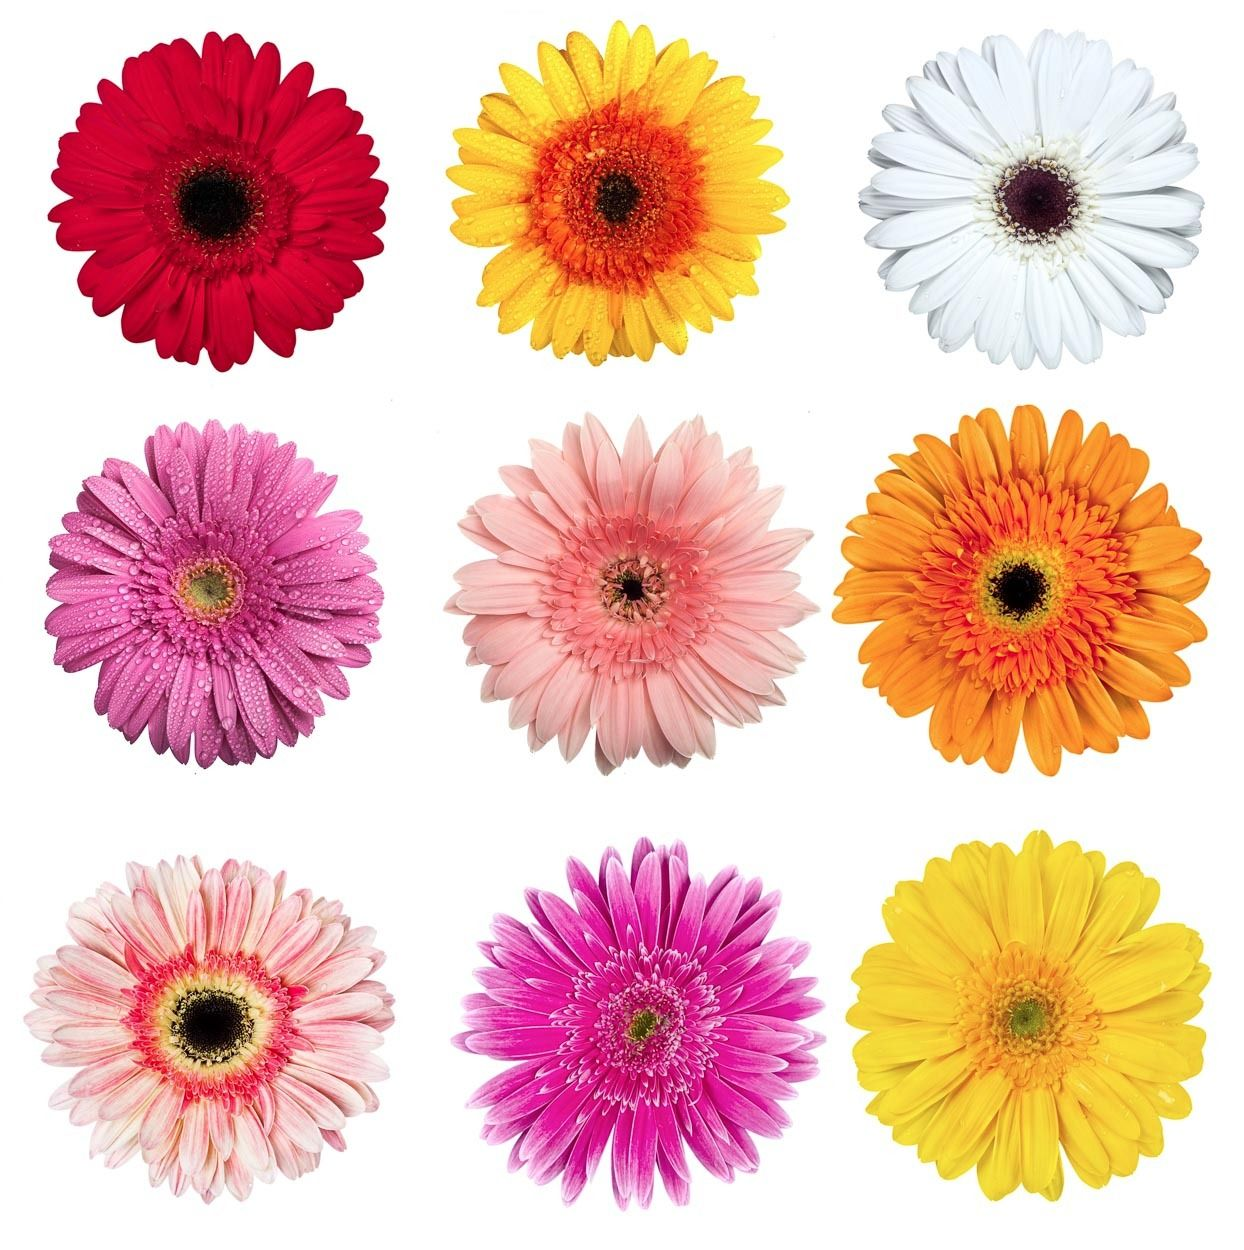 Gerbera Flower Bengali Meaning Gerbera Daisy. Colors: Light Pink, Dark Pink, Yellow